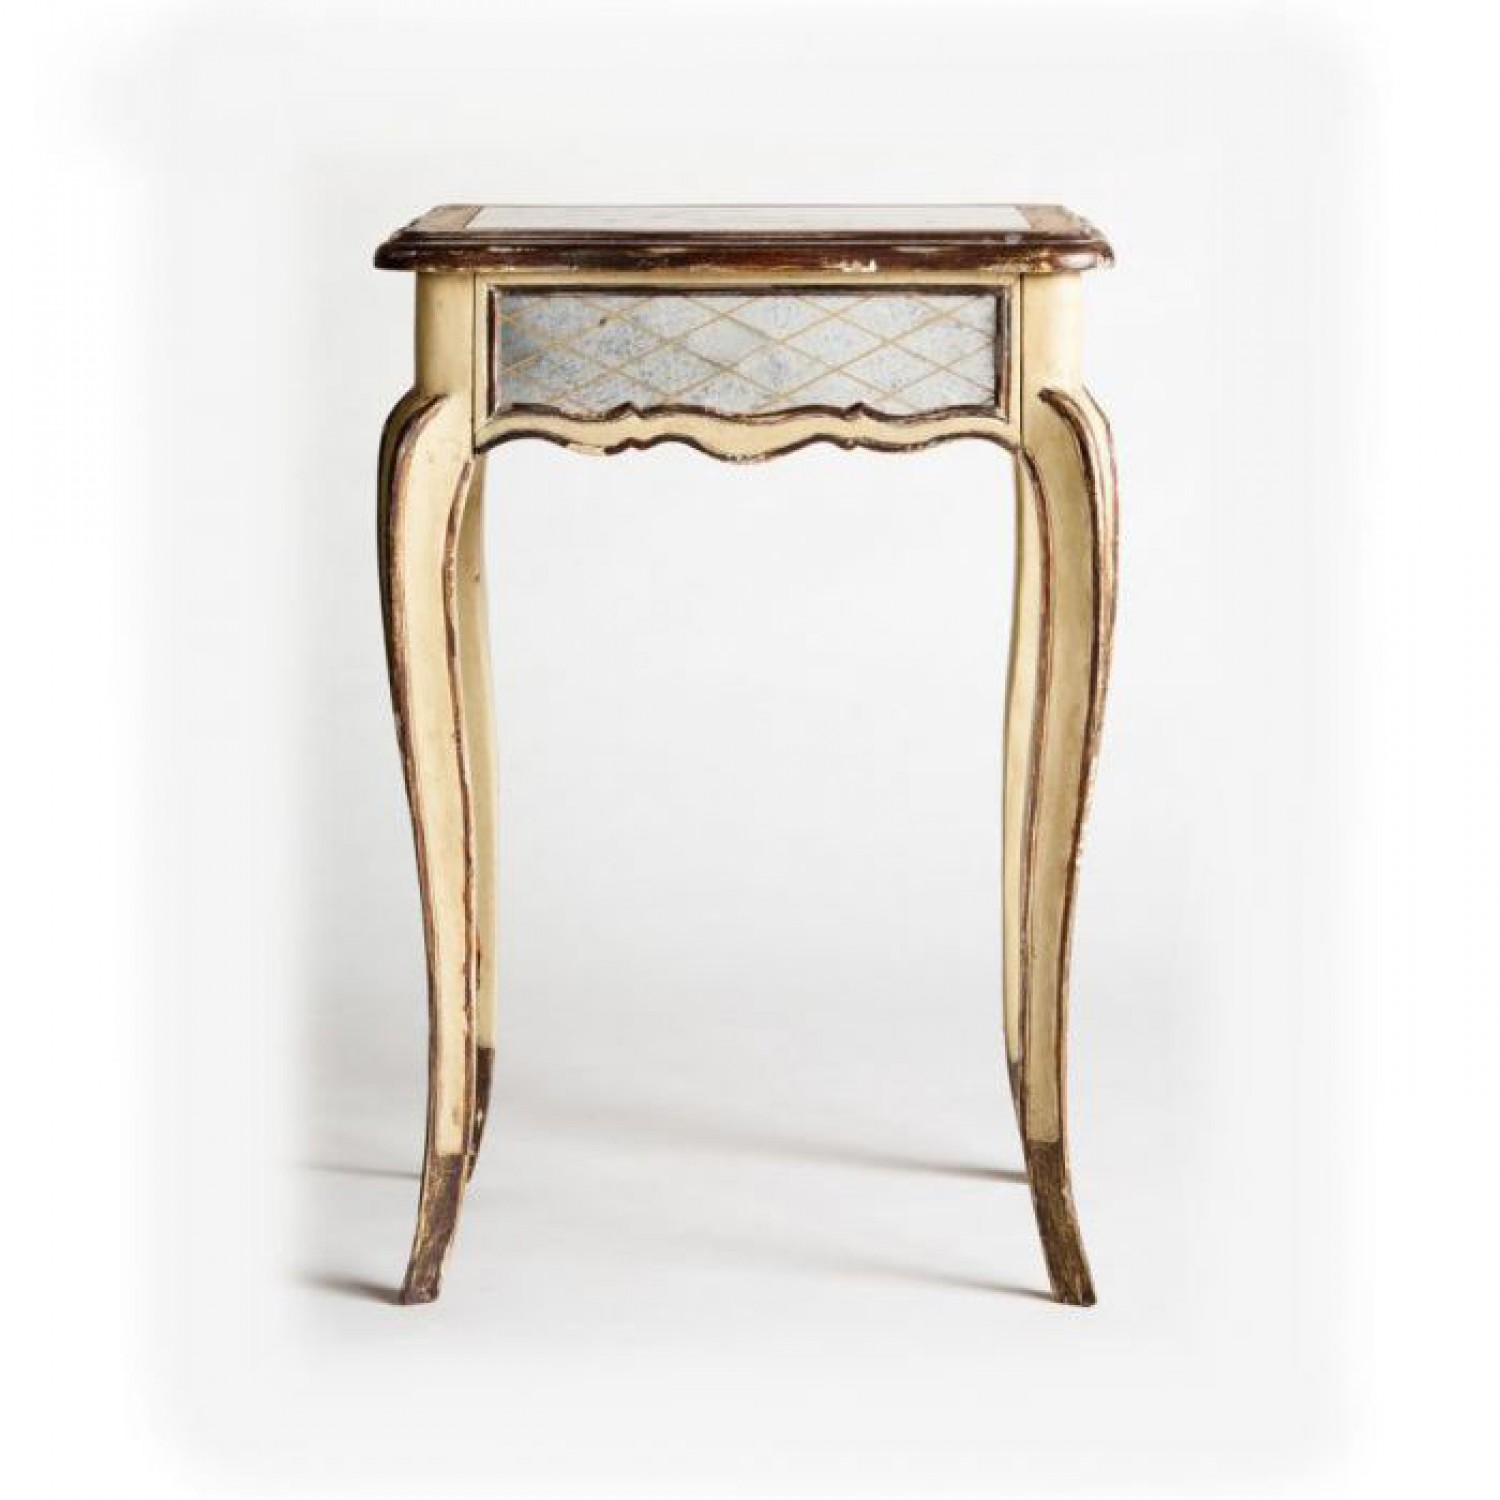 Tall End Tables the Decorative as Well as Functional Pieces